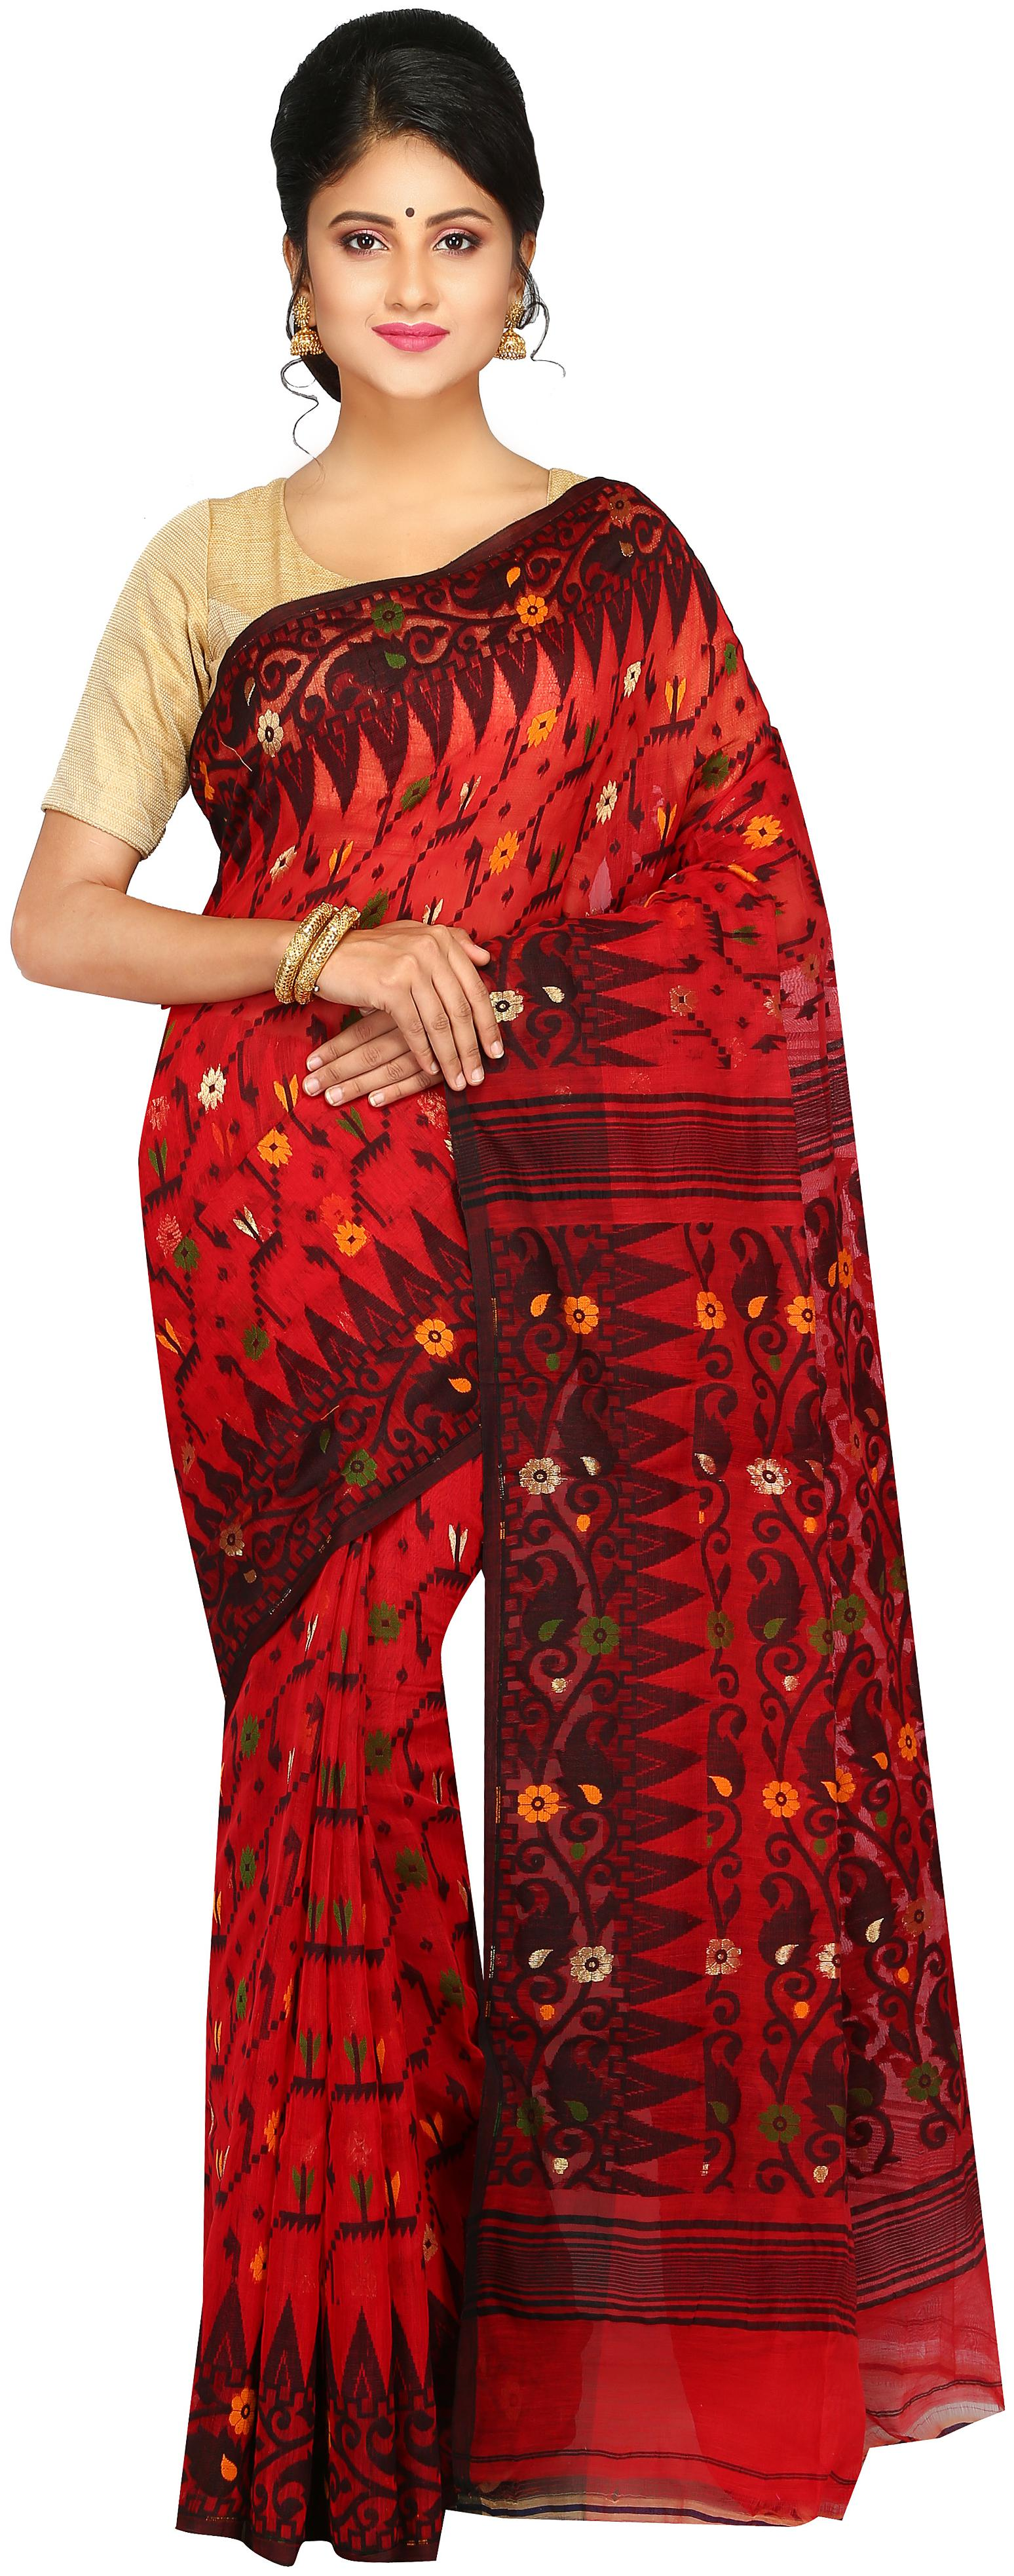 https://assetscdn1.paytm.com/images/catalog/product/A/AP/APPPINKLOOM-WOMPINK308453BC9E6350/a_0..jpg